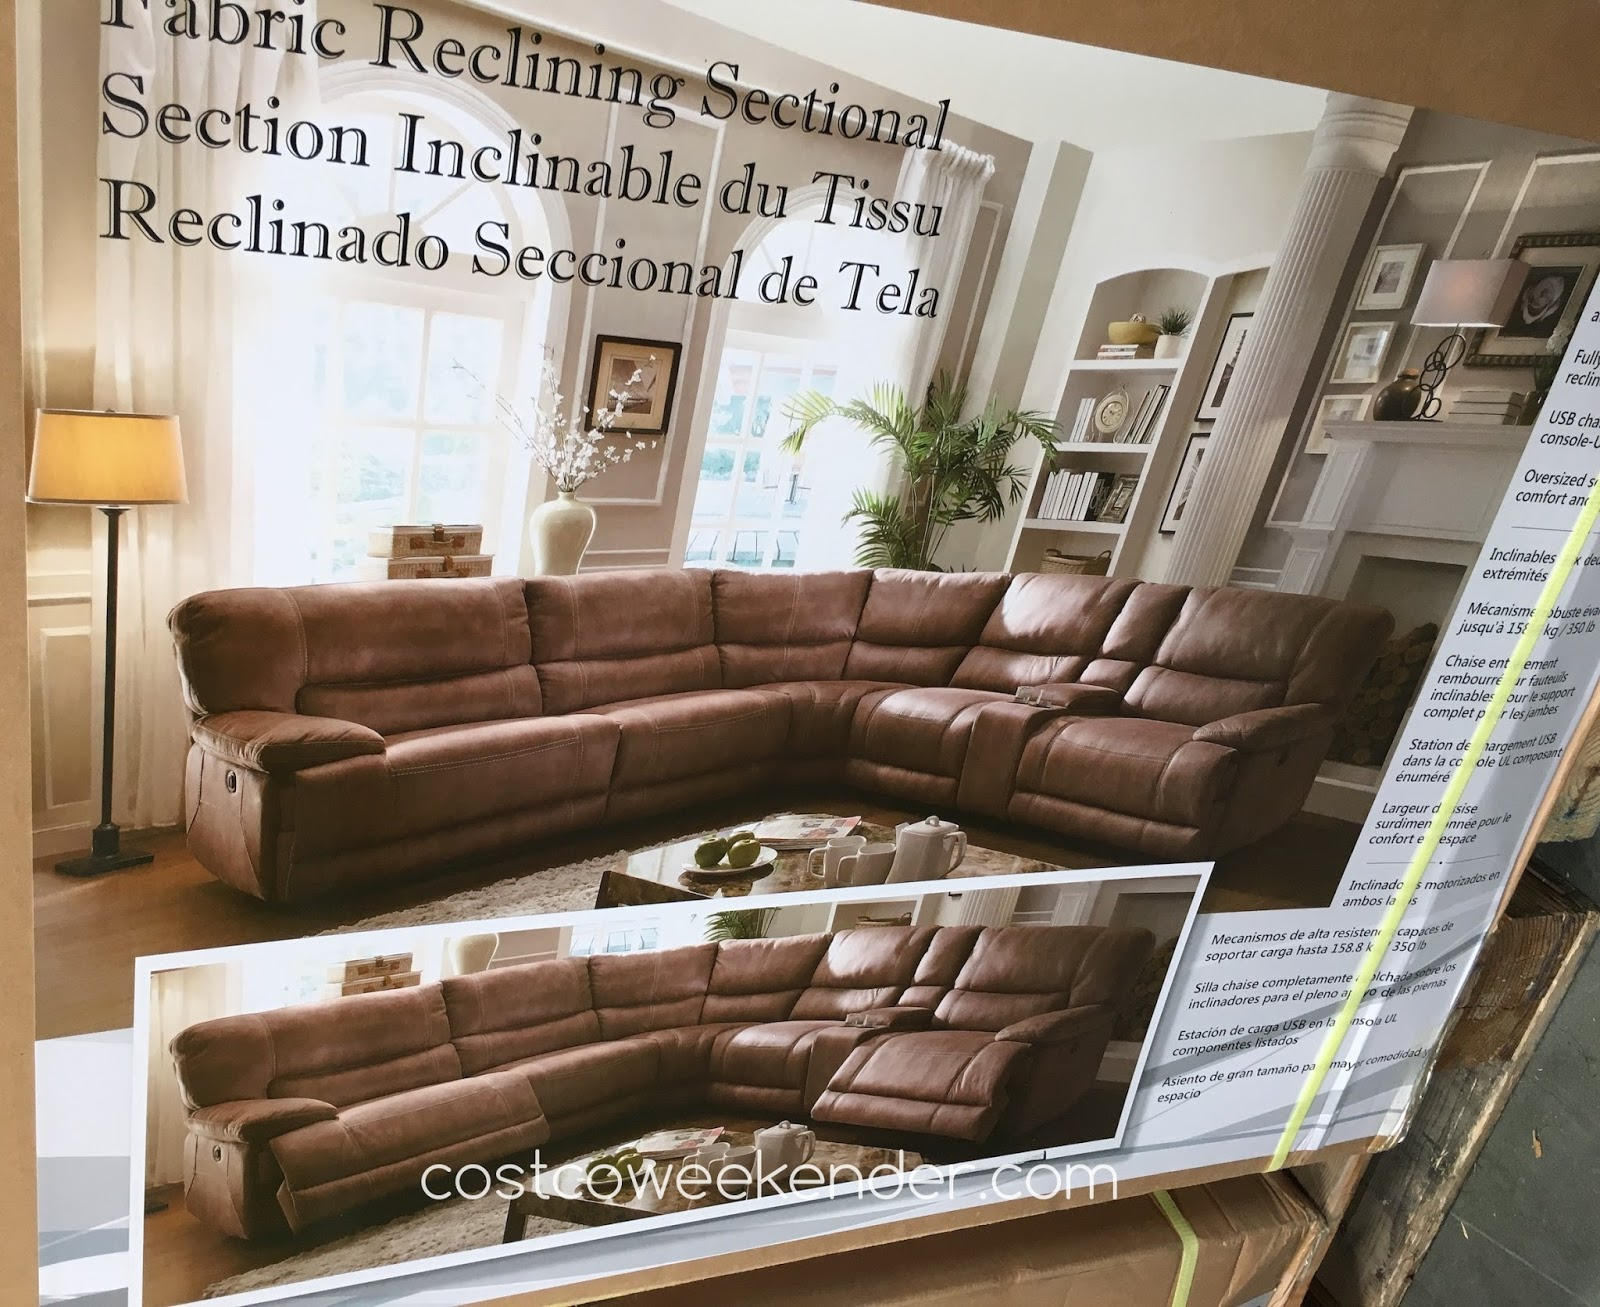 Fabric Power Reclining Sectional Costco Weekender